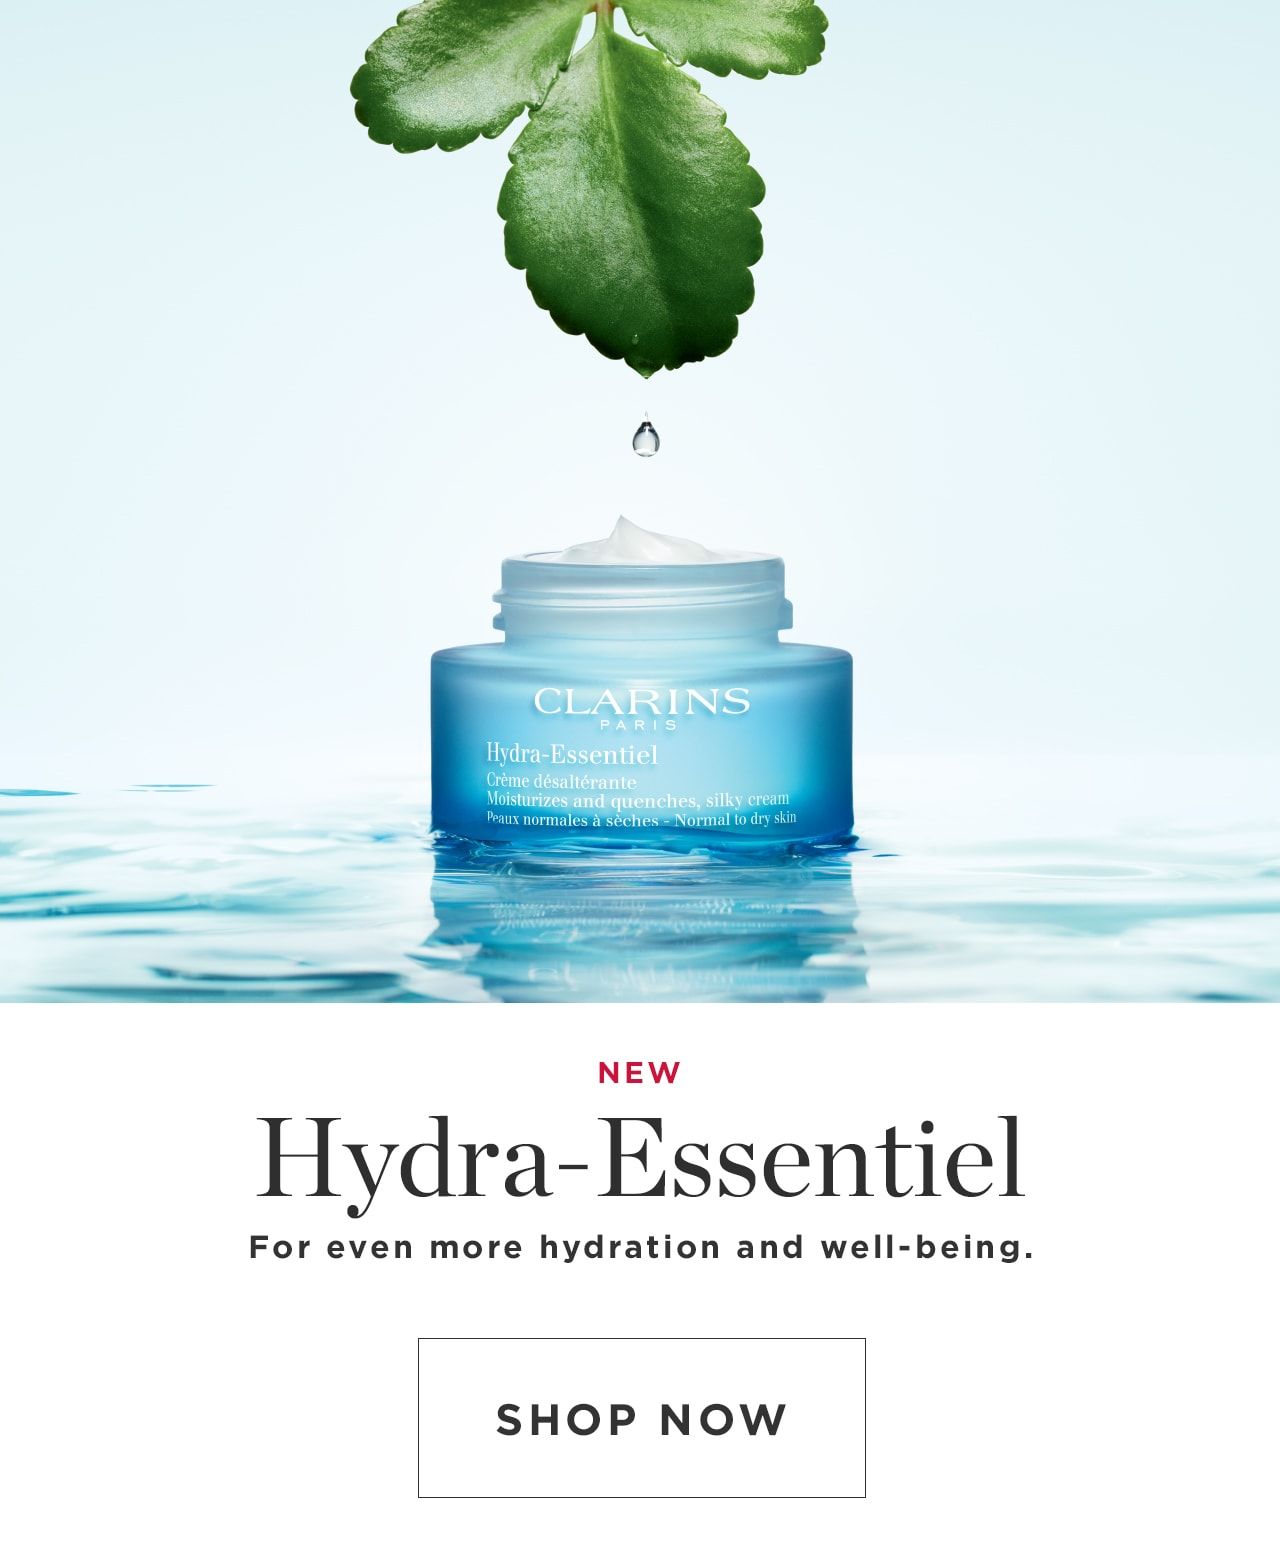 Hydra-Essentiel for even more hydration and well-being shop now